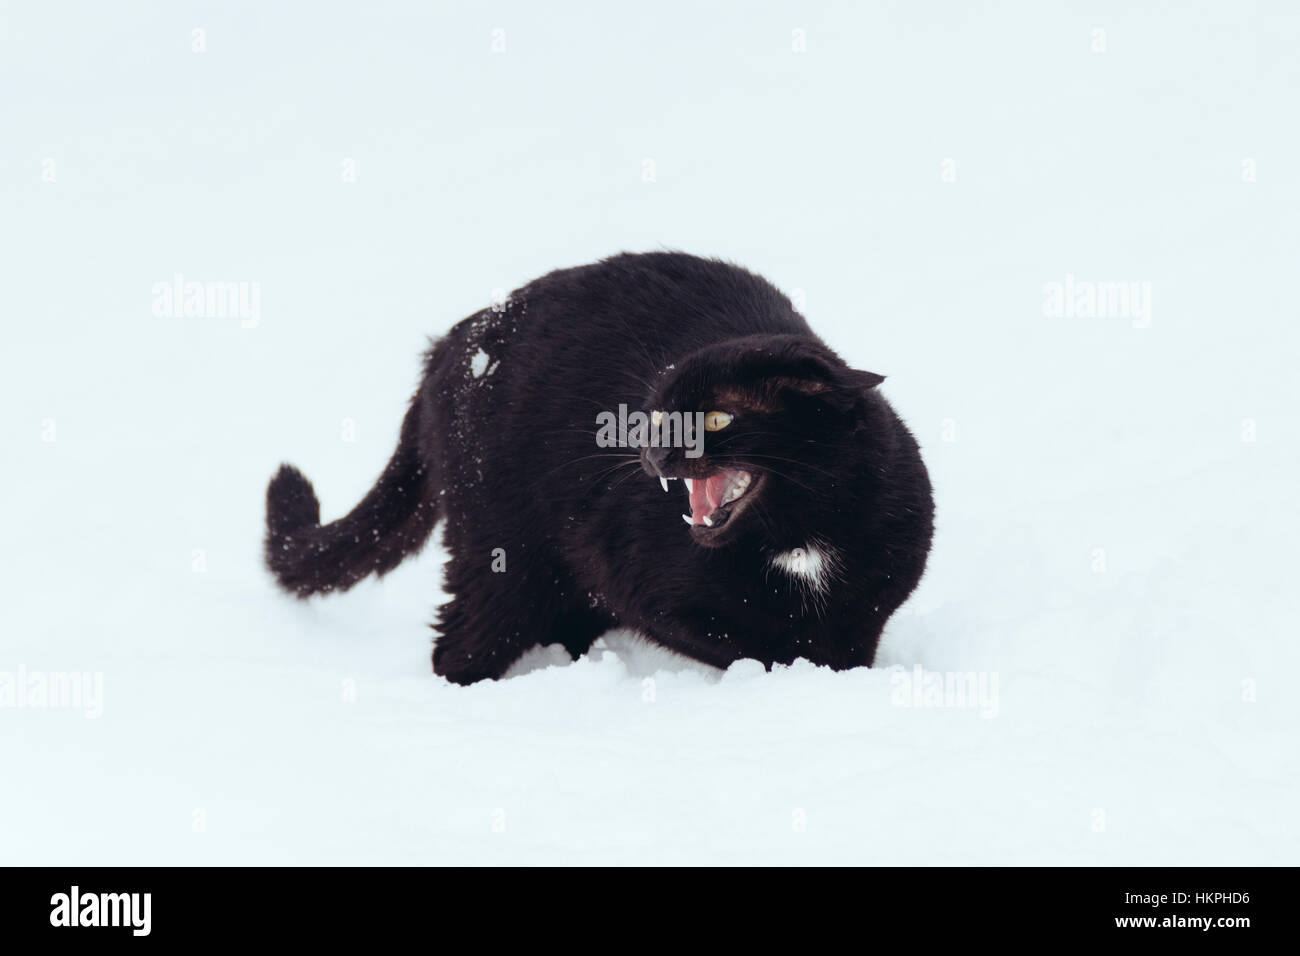 Angry Black cat on a snow - Stock Image